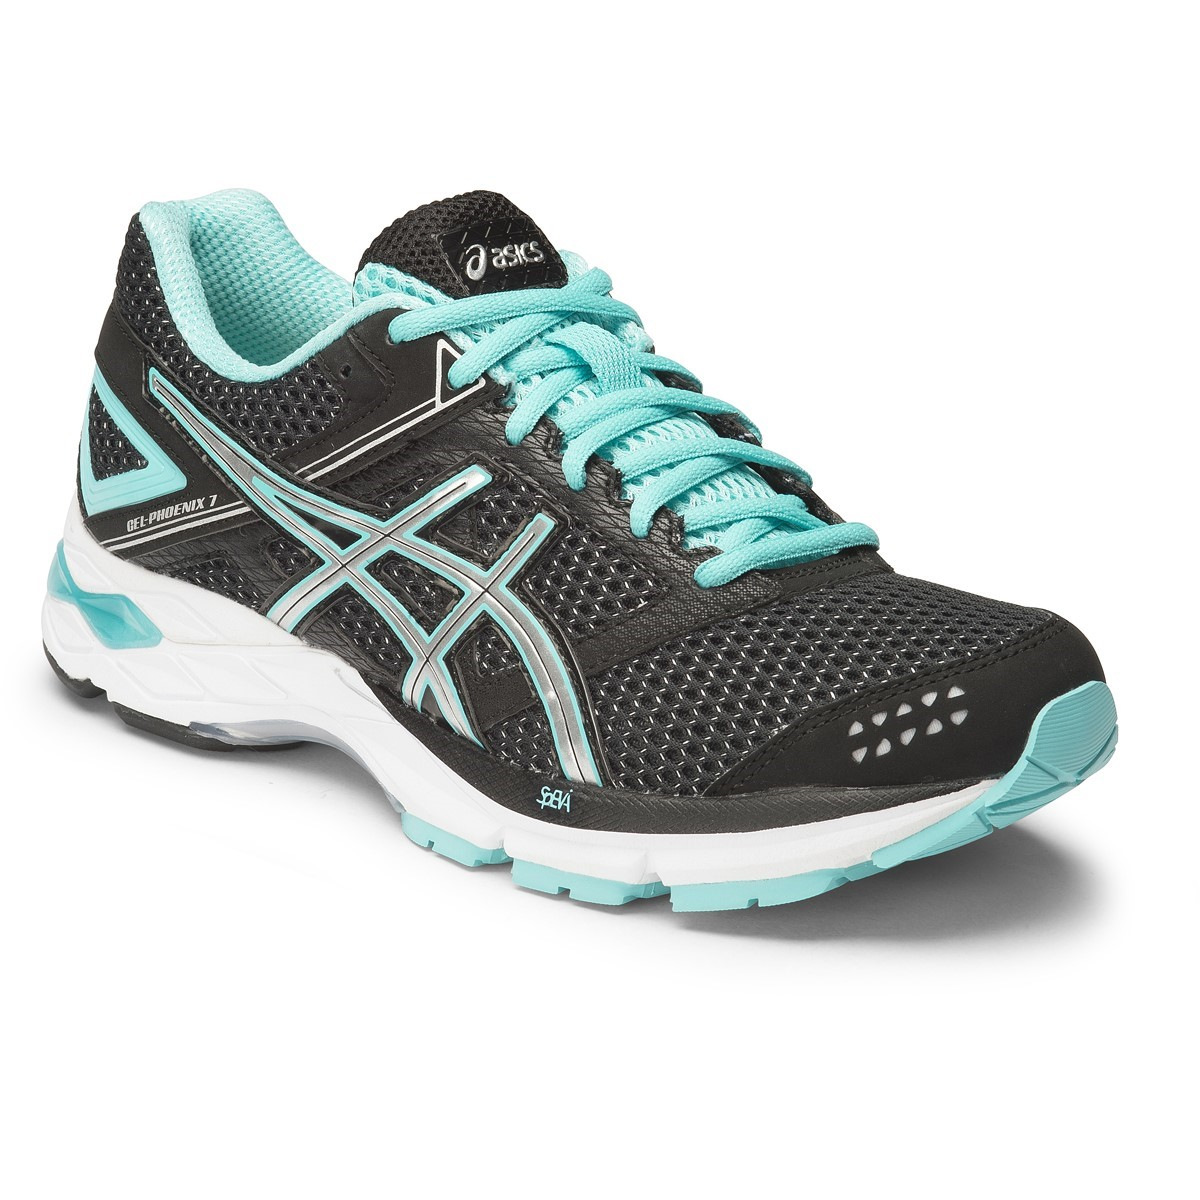 Running Shoes Online Shopping Australia